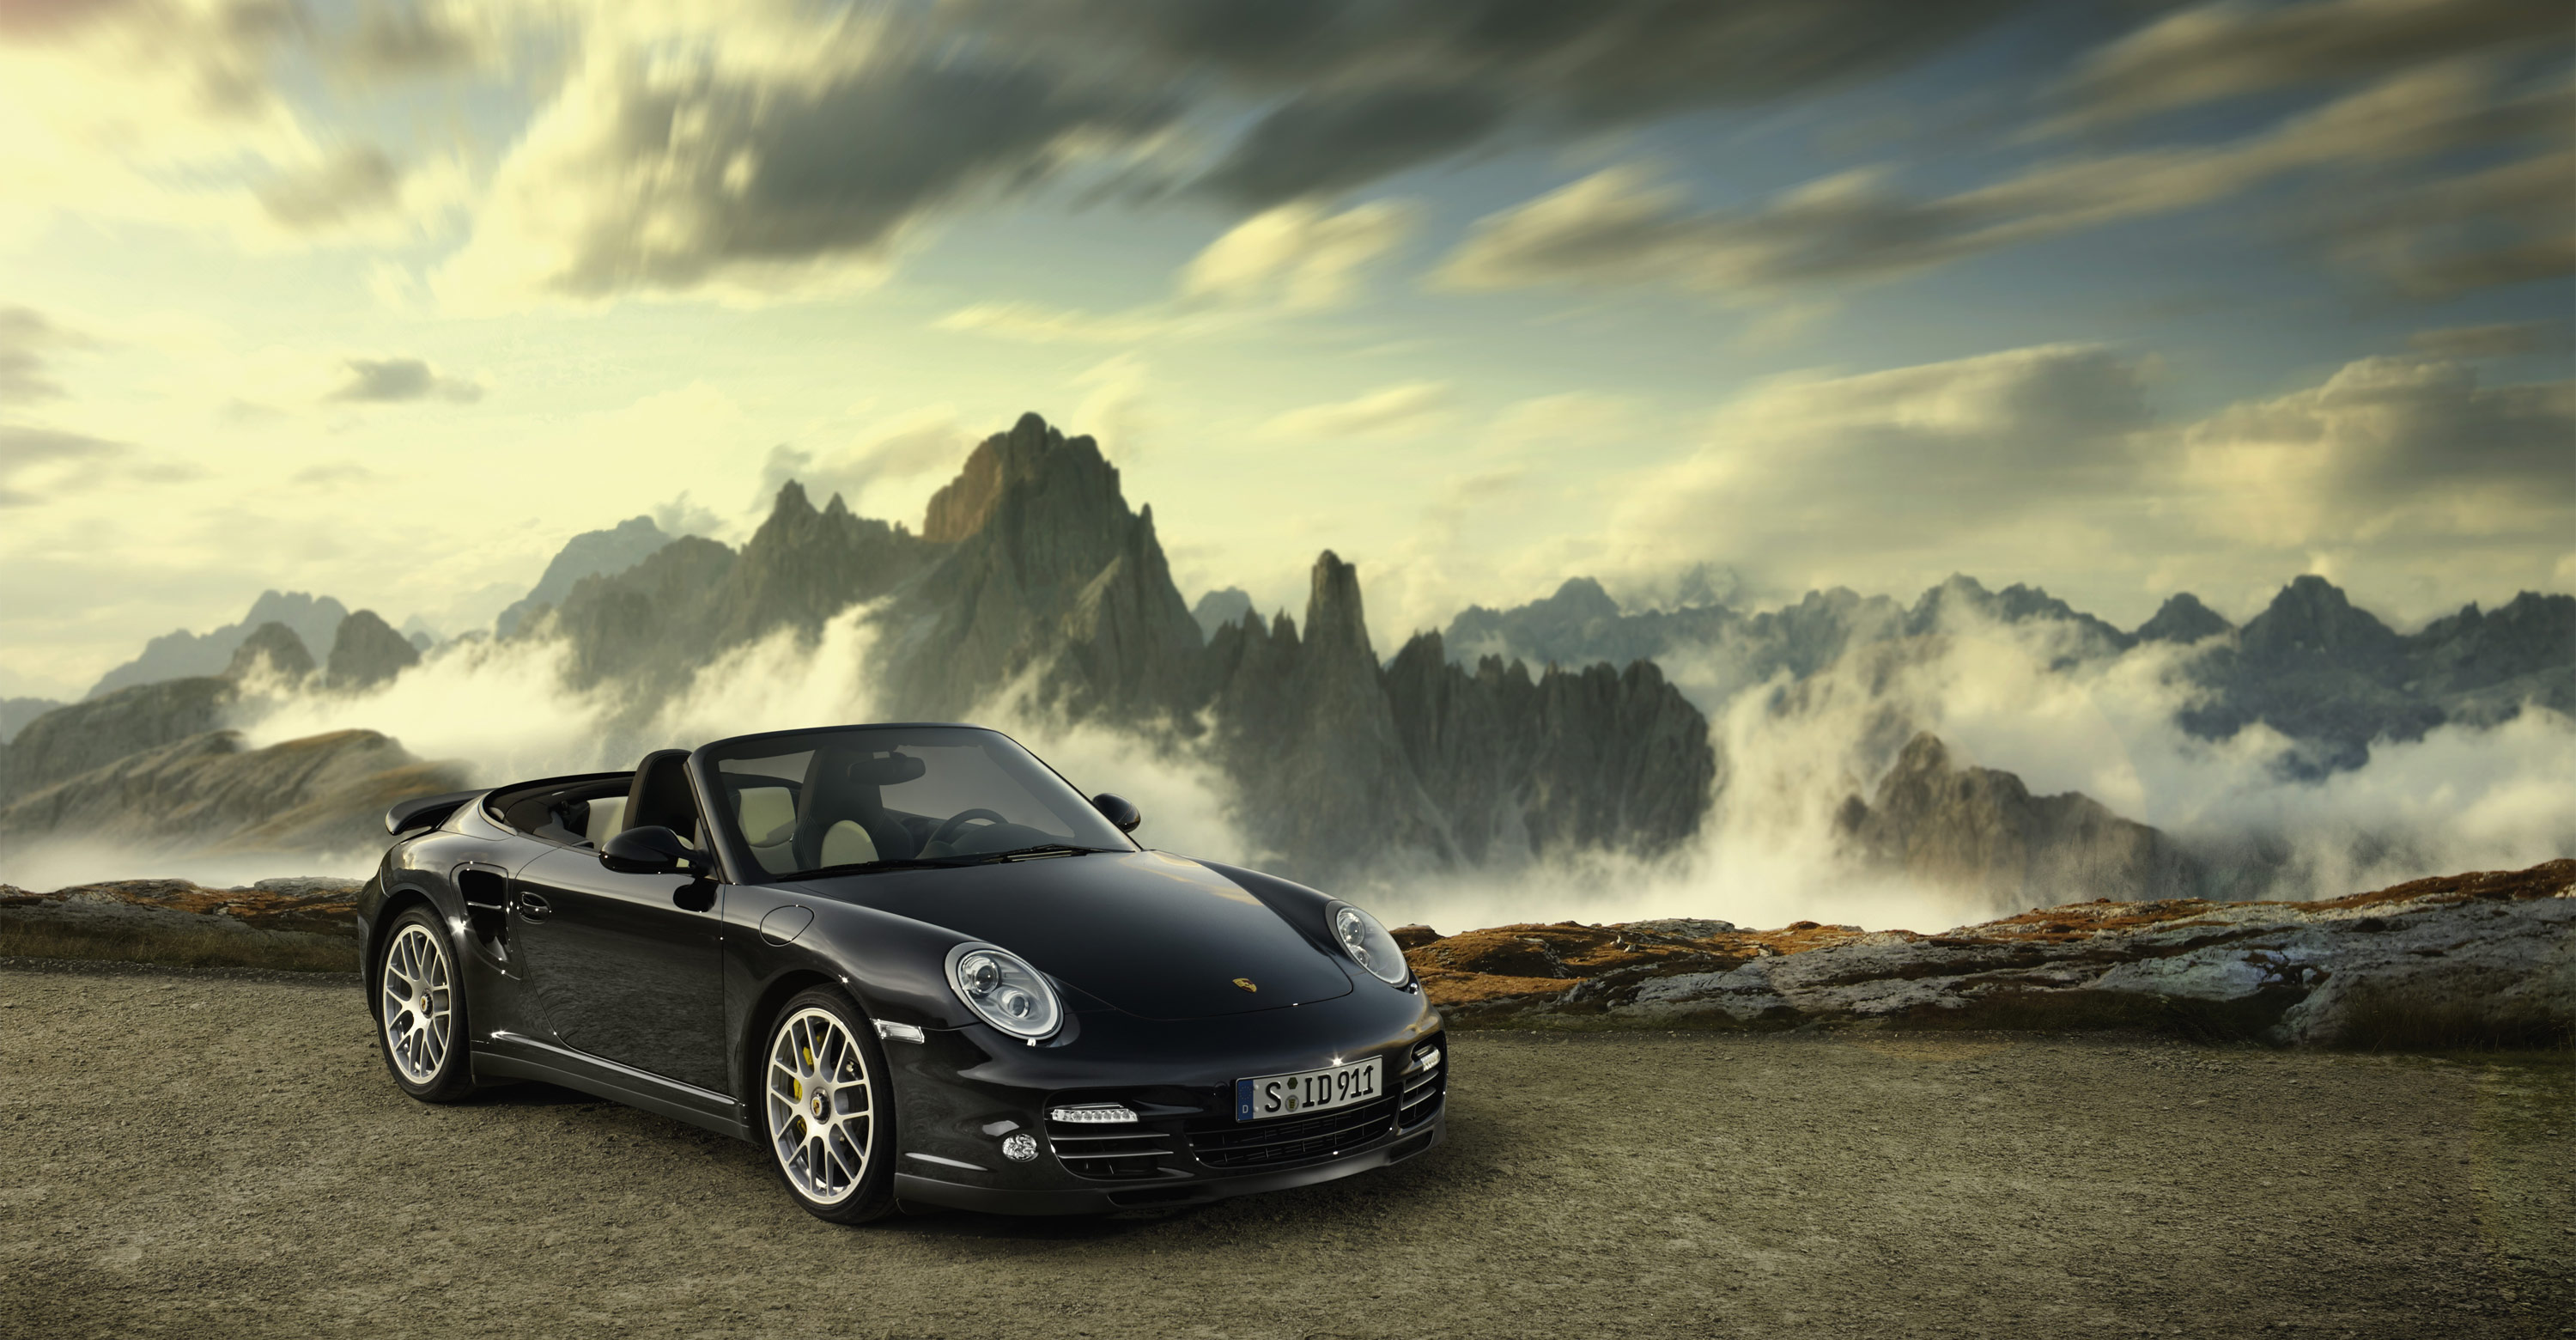 Porsche Turbo S Spyder Wallpapers Inspirational Porsche